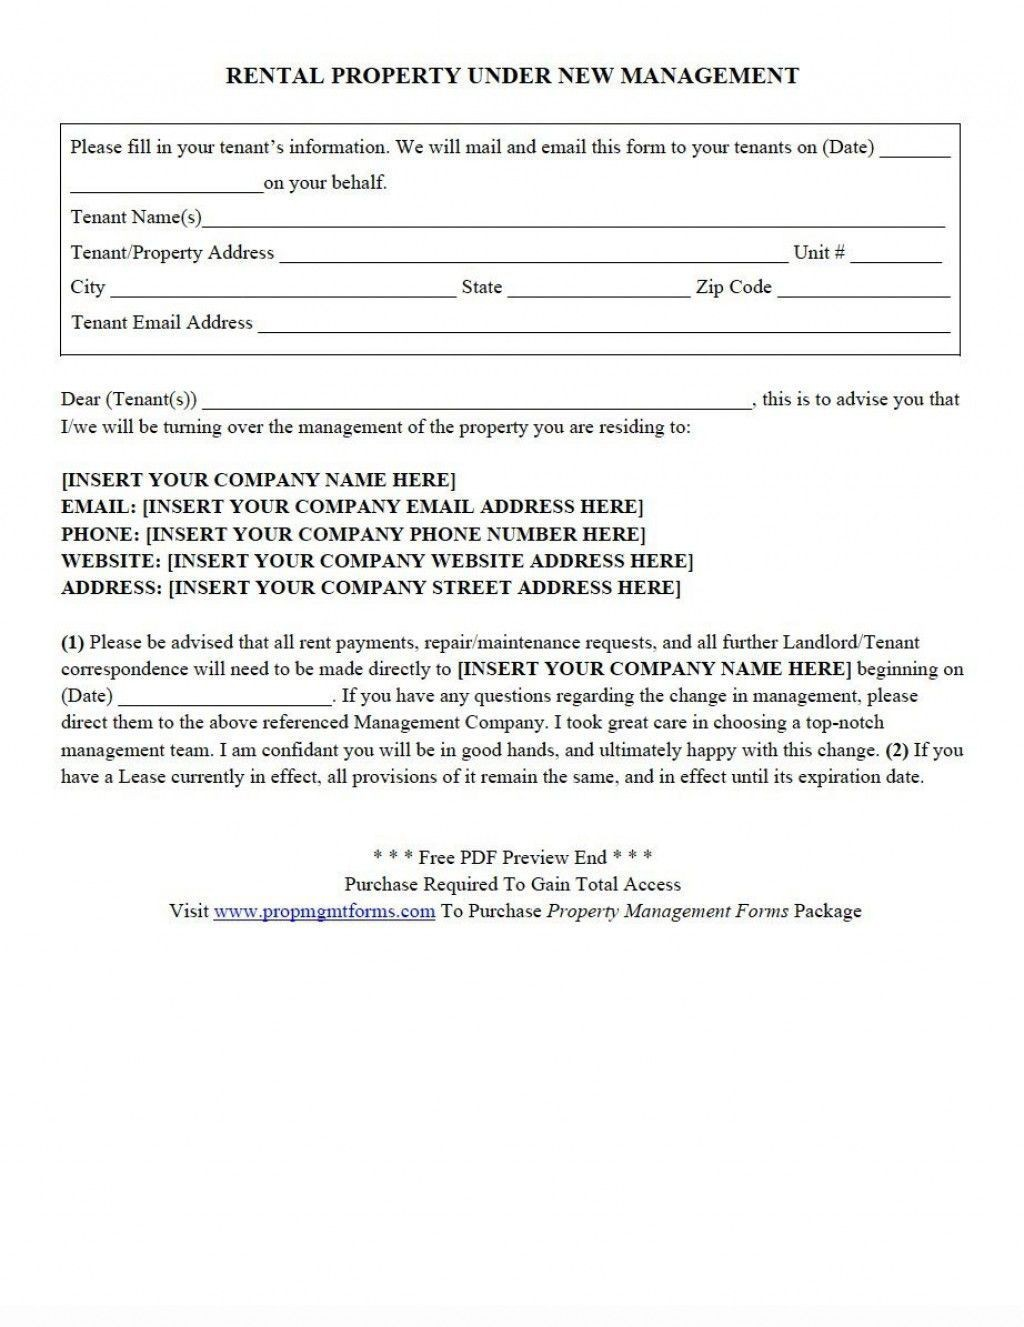 006 Top Property Management Contract Template Ontario Concept Large